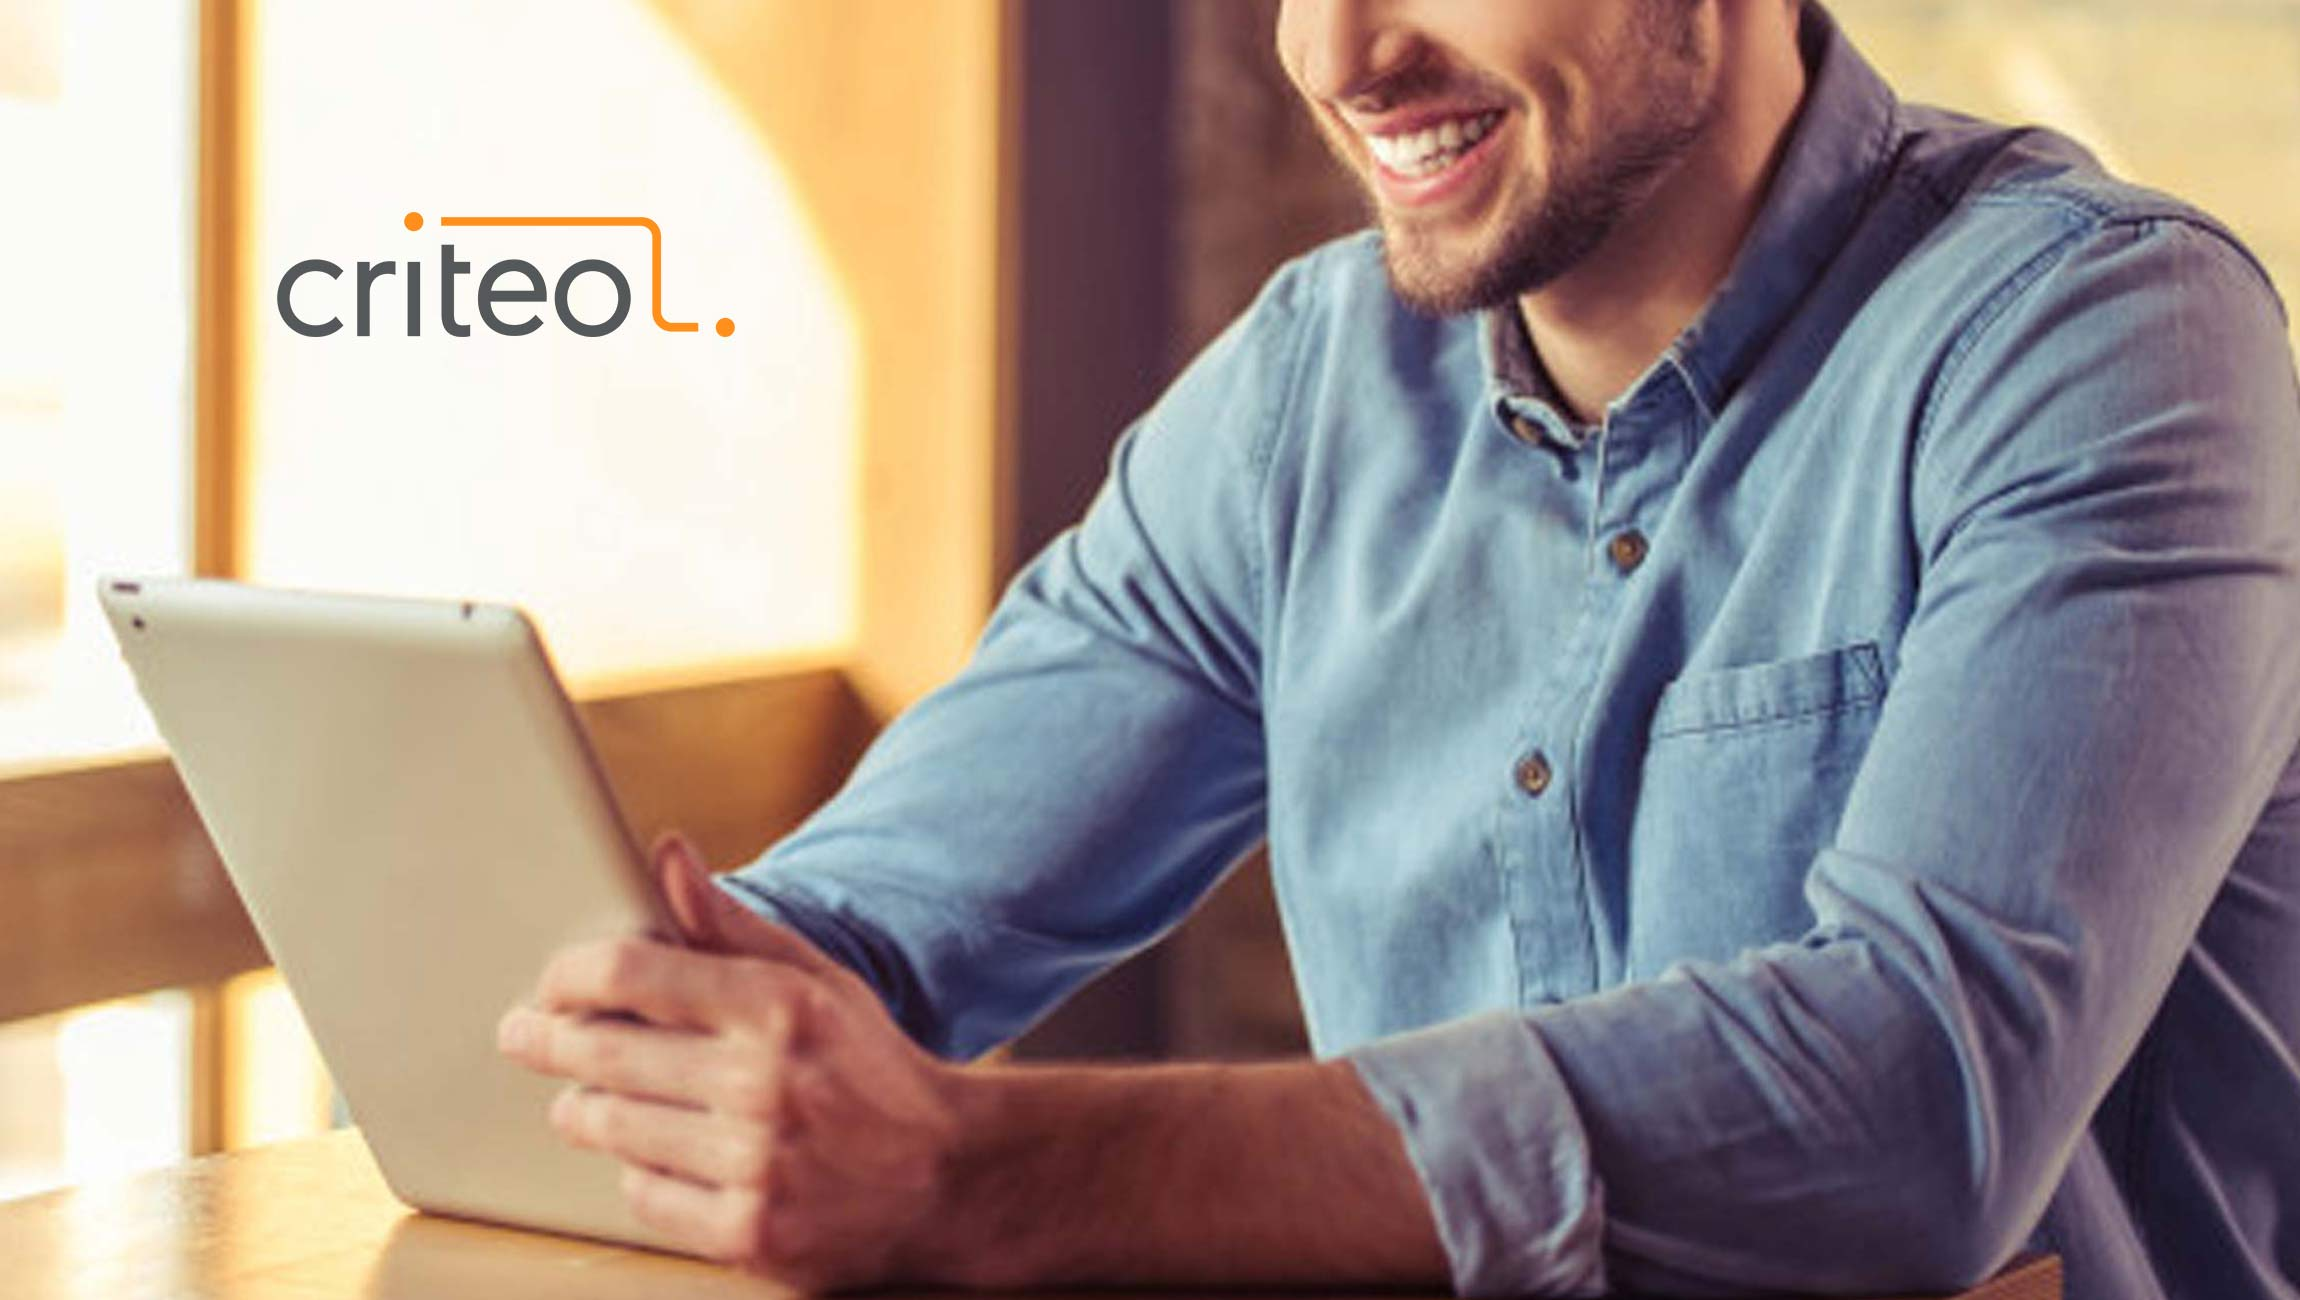 Criteo Builds Out Roster of New Talent to Accelerate Execution on New Vision 11